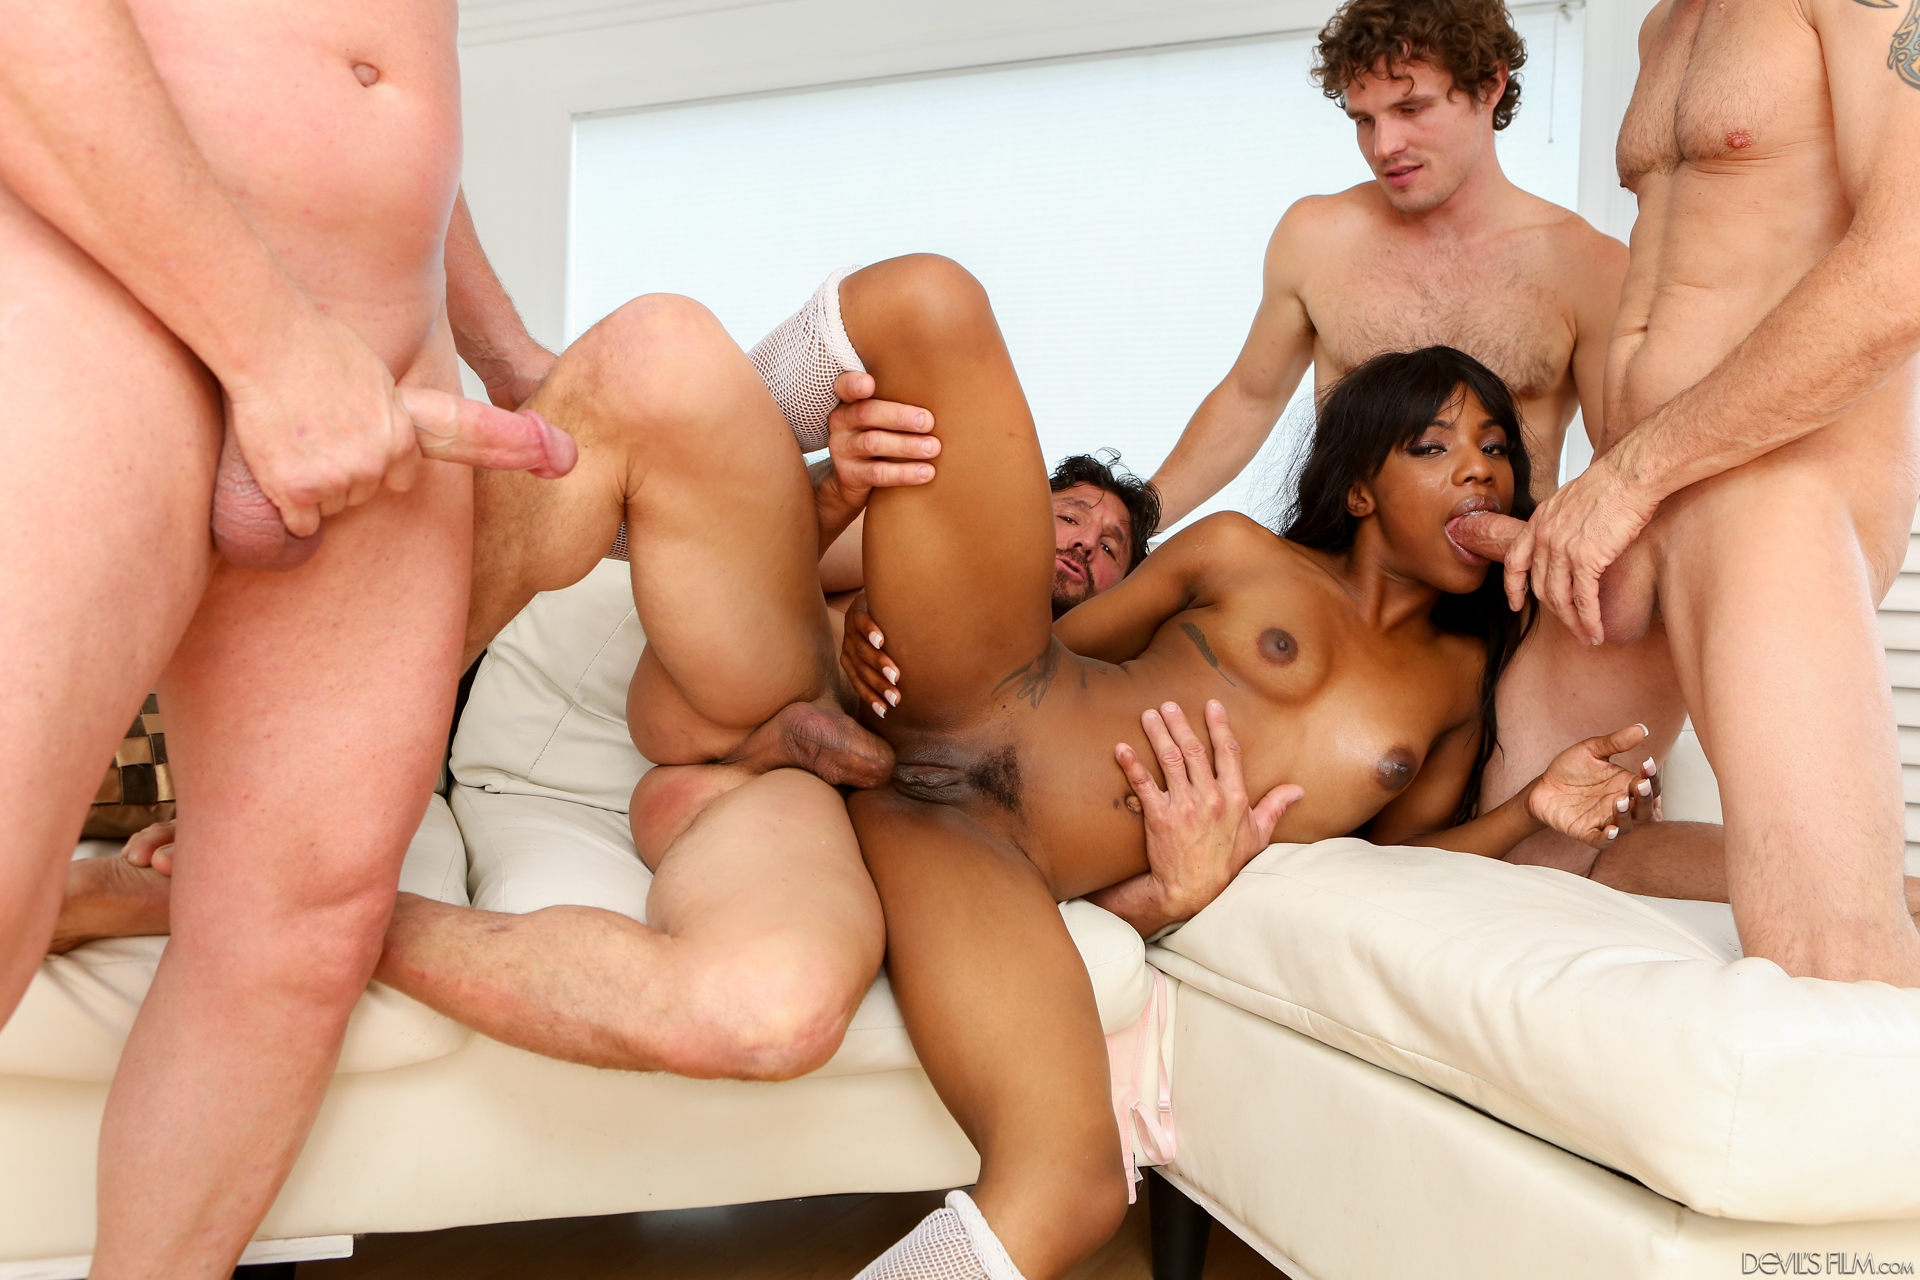 White women pleasing black men mix 7